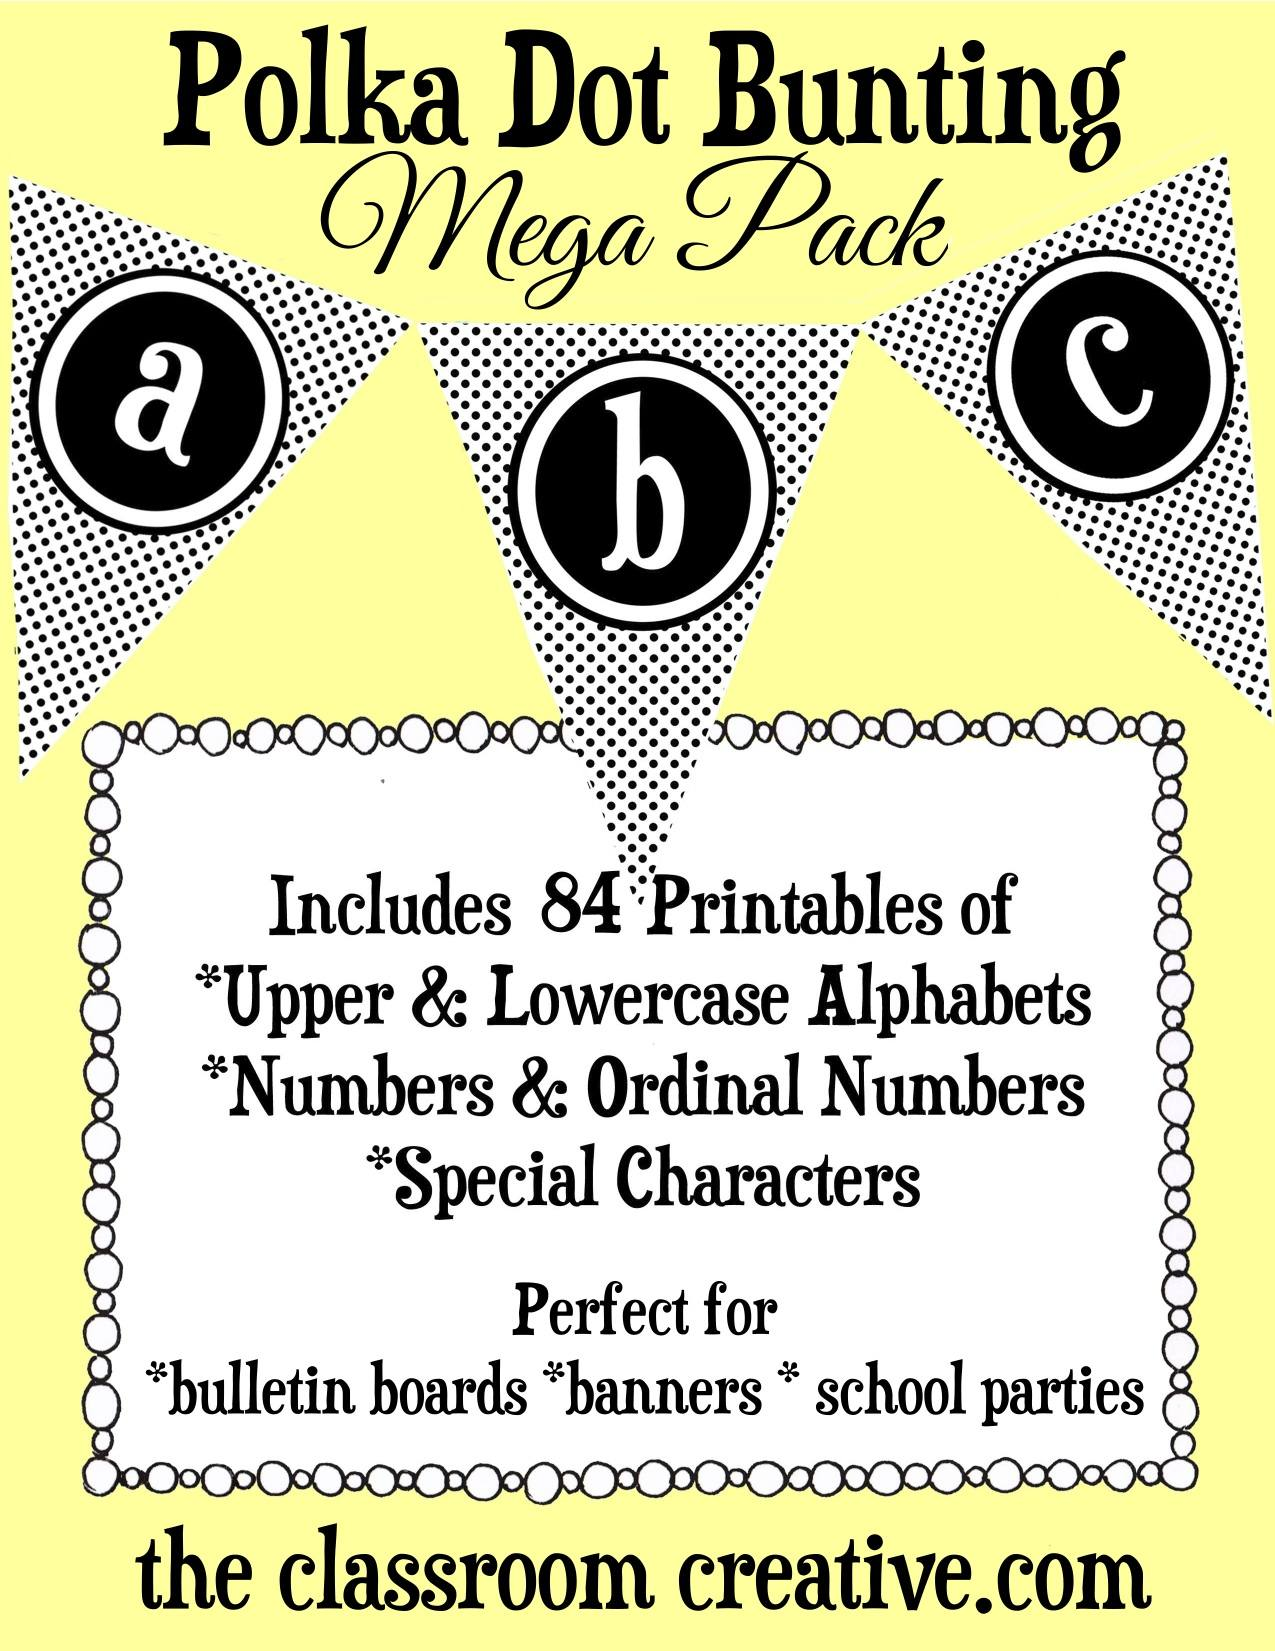 Free Printable Classroom Decorations Download Free Clip